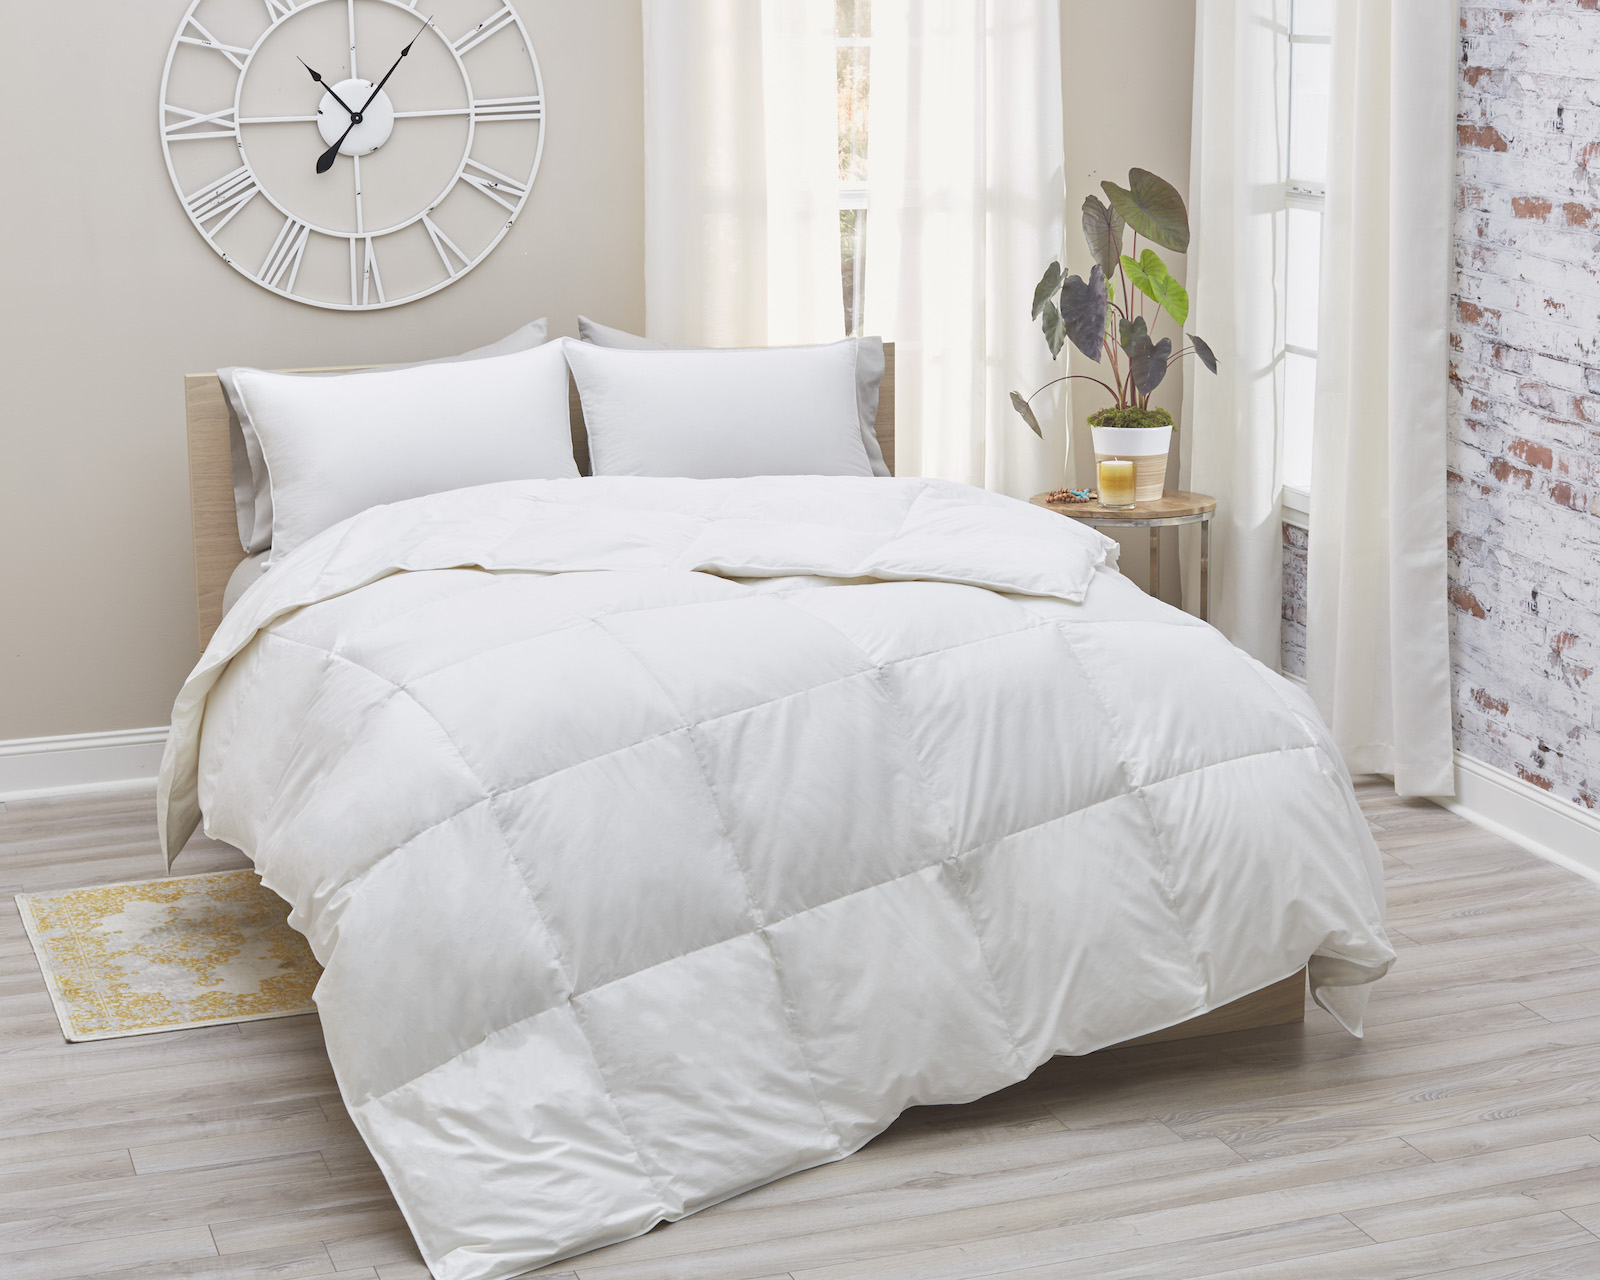 Winners Duvet Covers Sol Organics Sustainable Luxury Bedding And Pamper Package